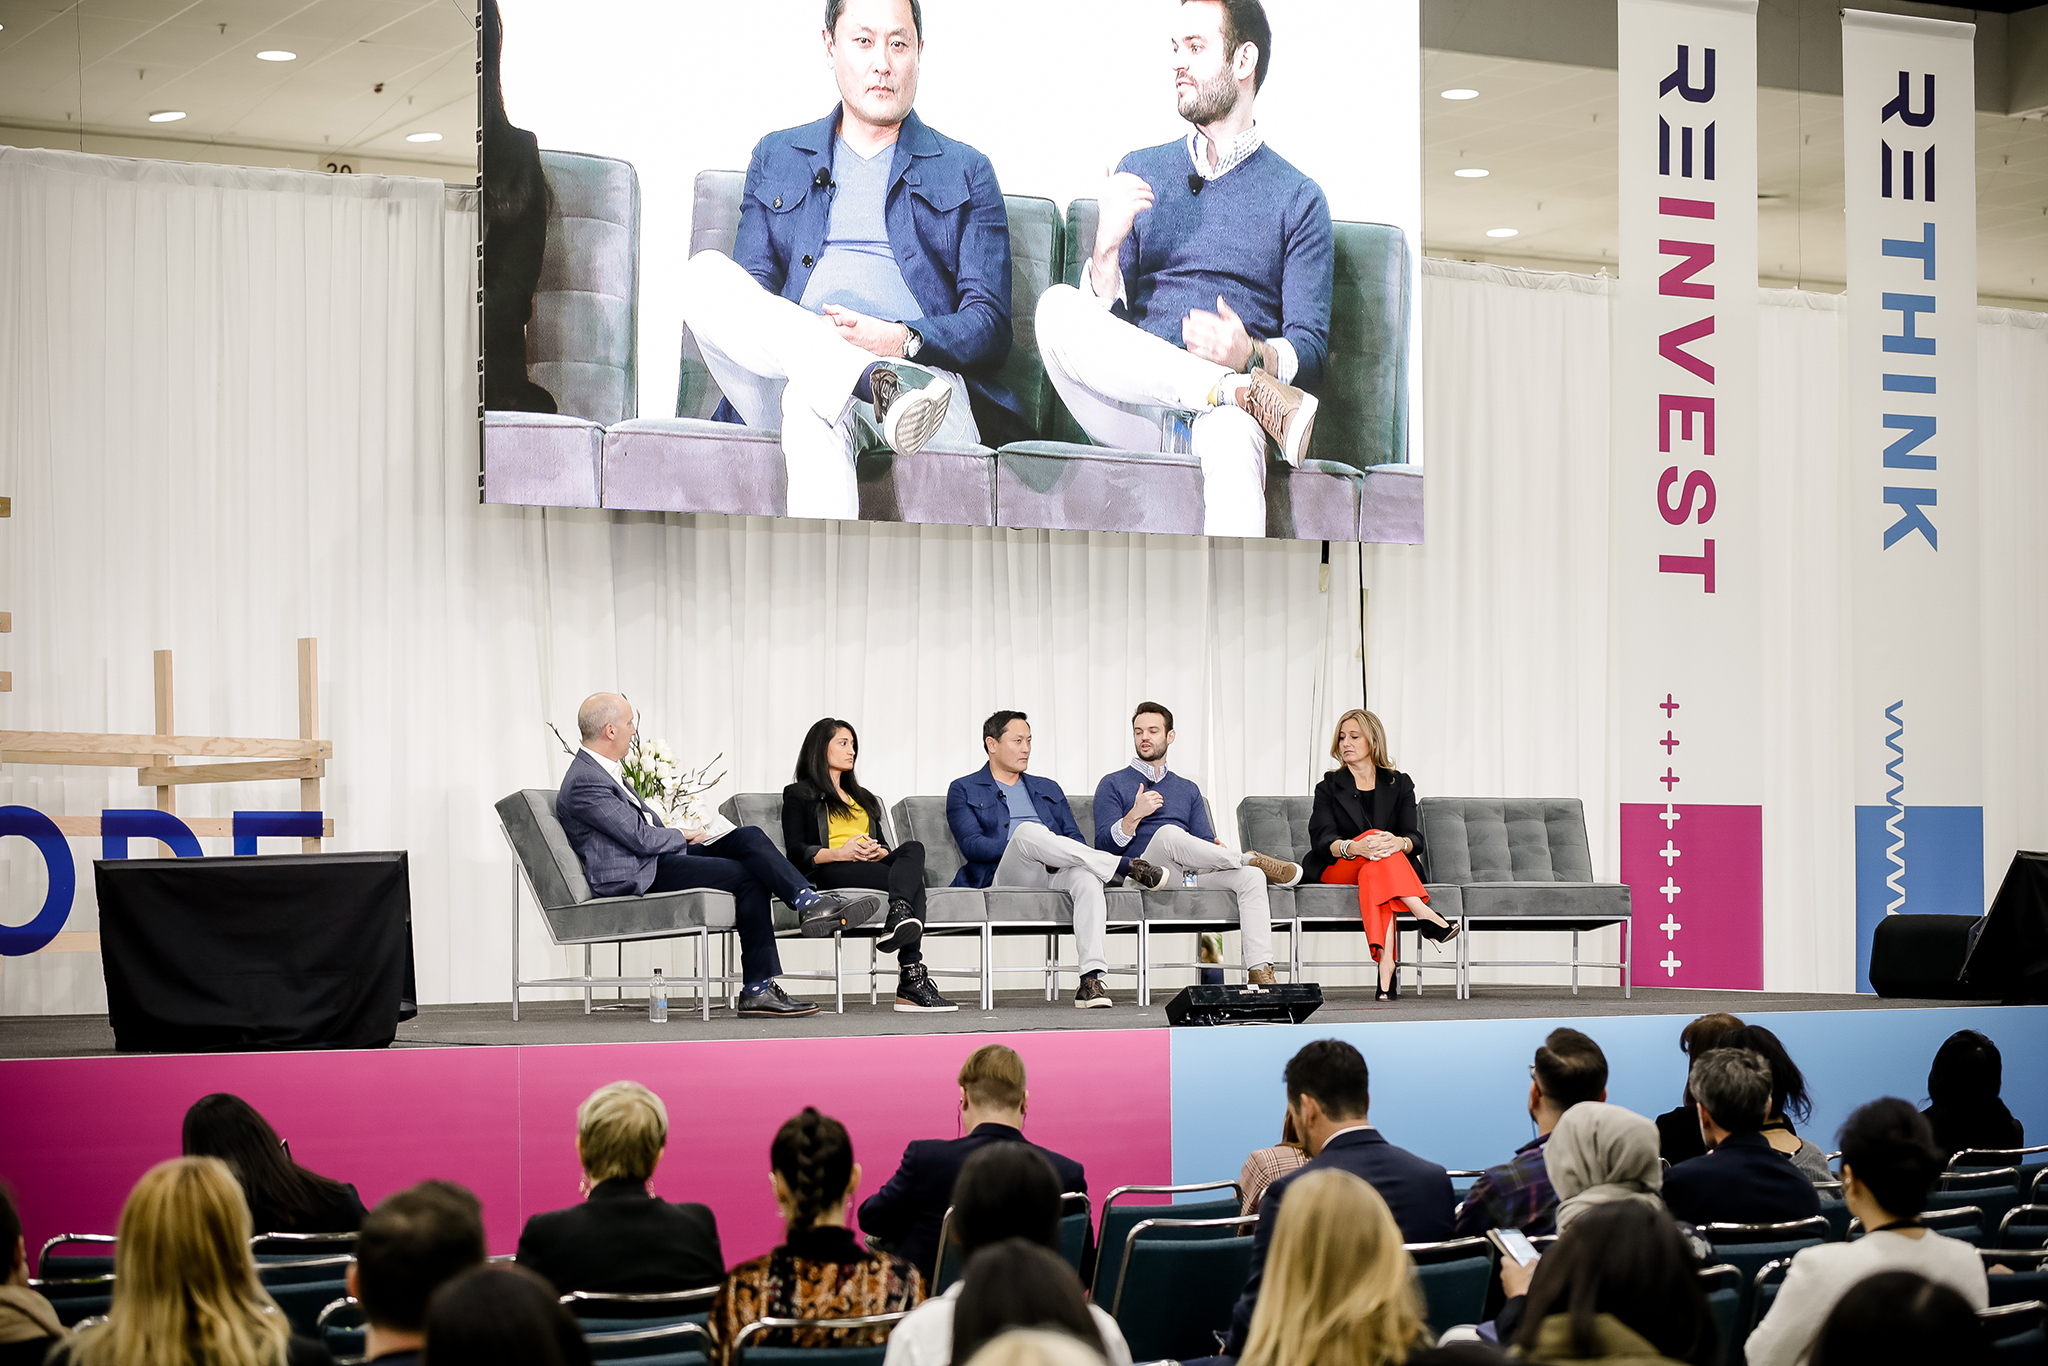 Panelists in the Reinvest track tackled valuations, venture capital and scaling a business.